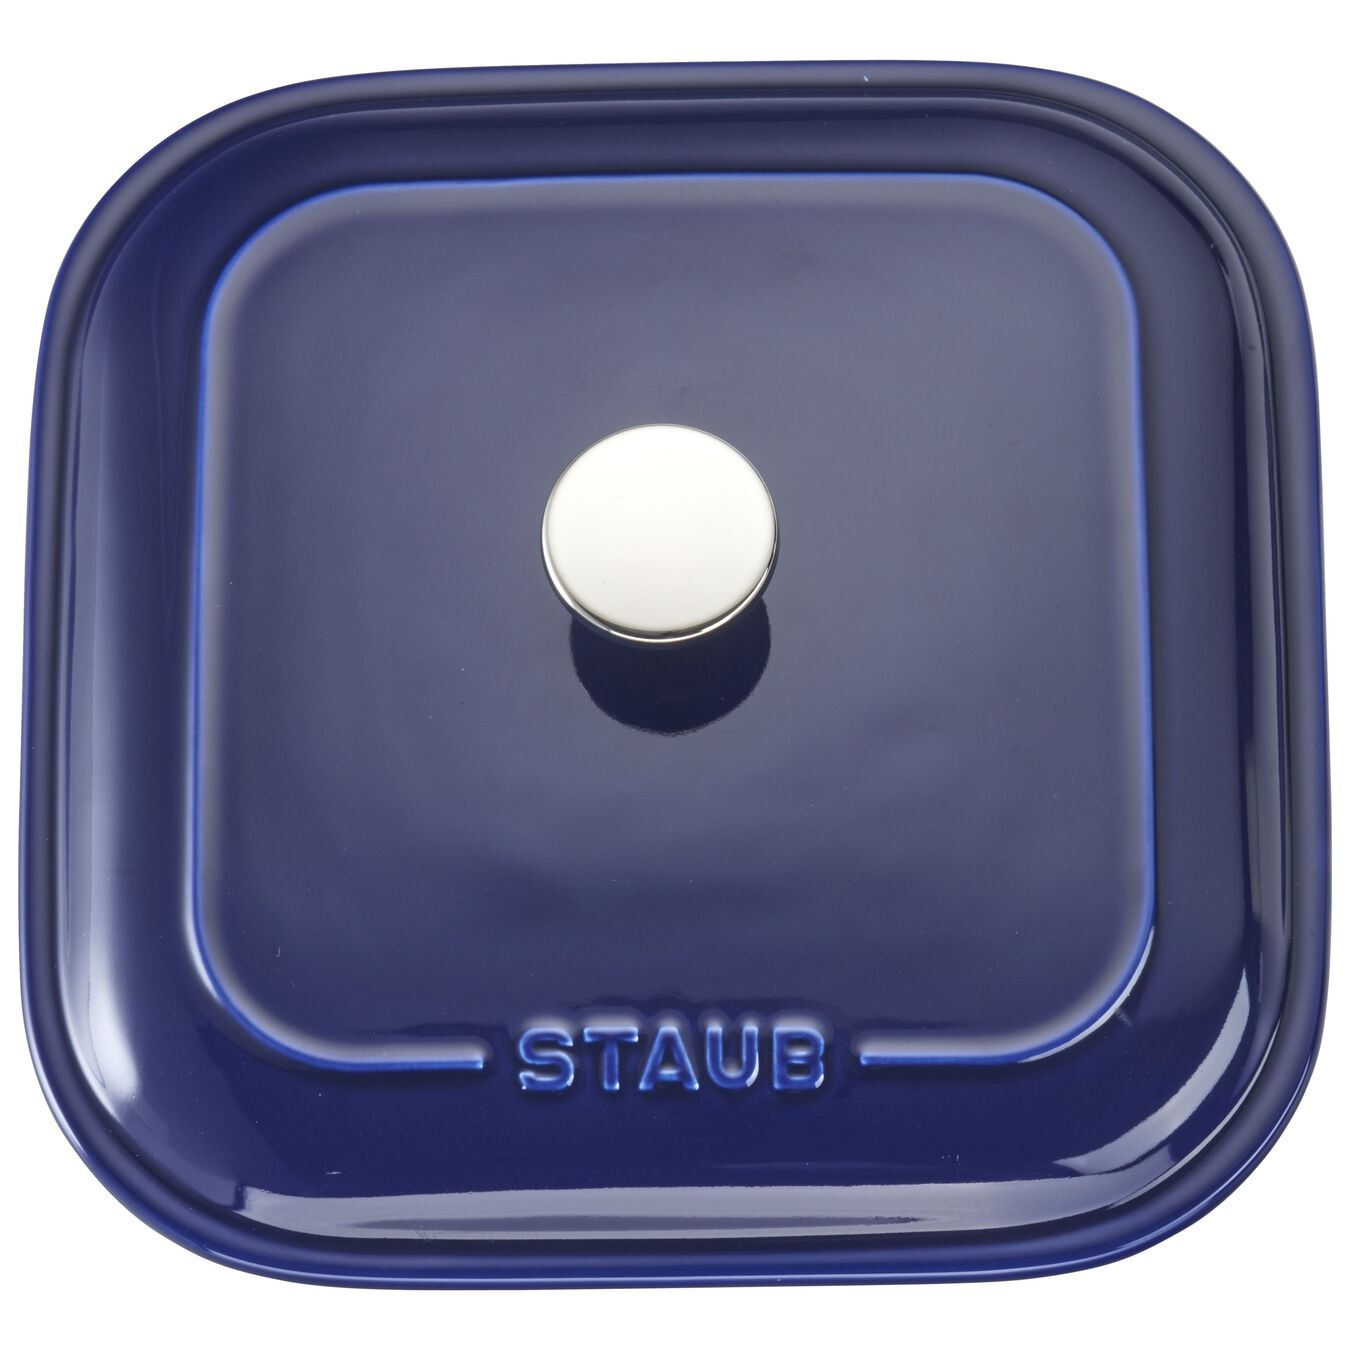 9-inch X 9-inch Square Covered Baking Dish - Dark Blue,,large 4